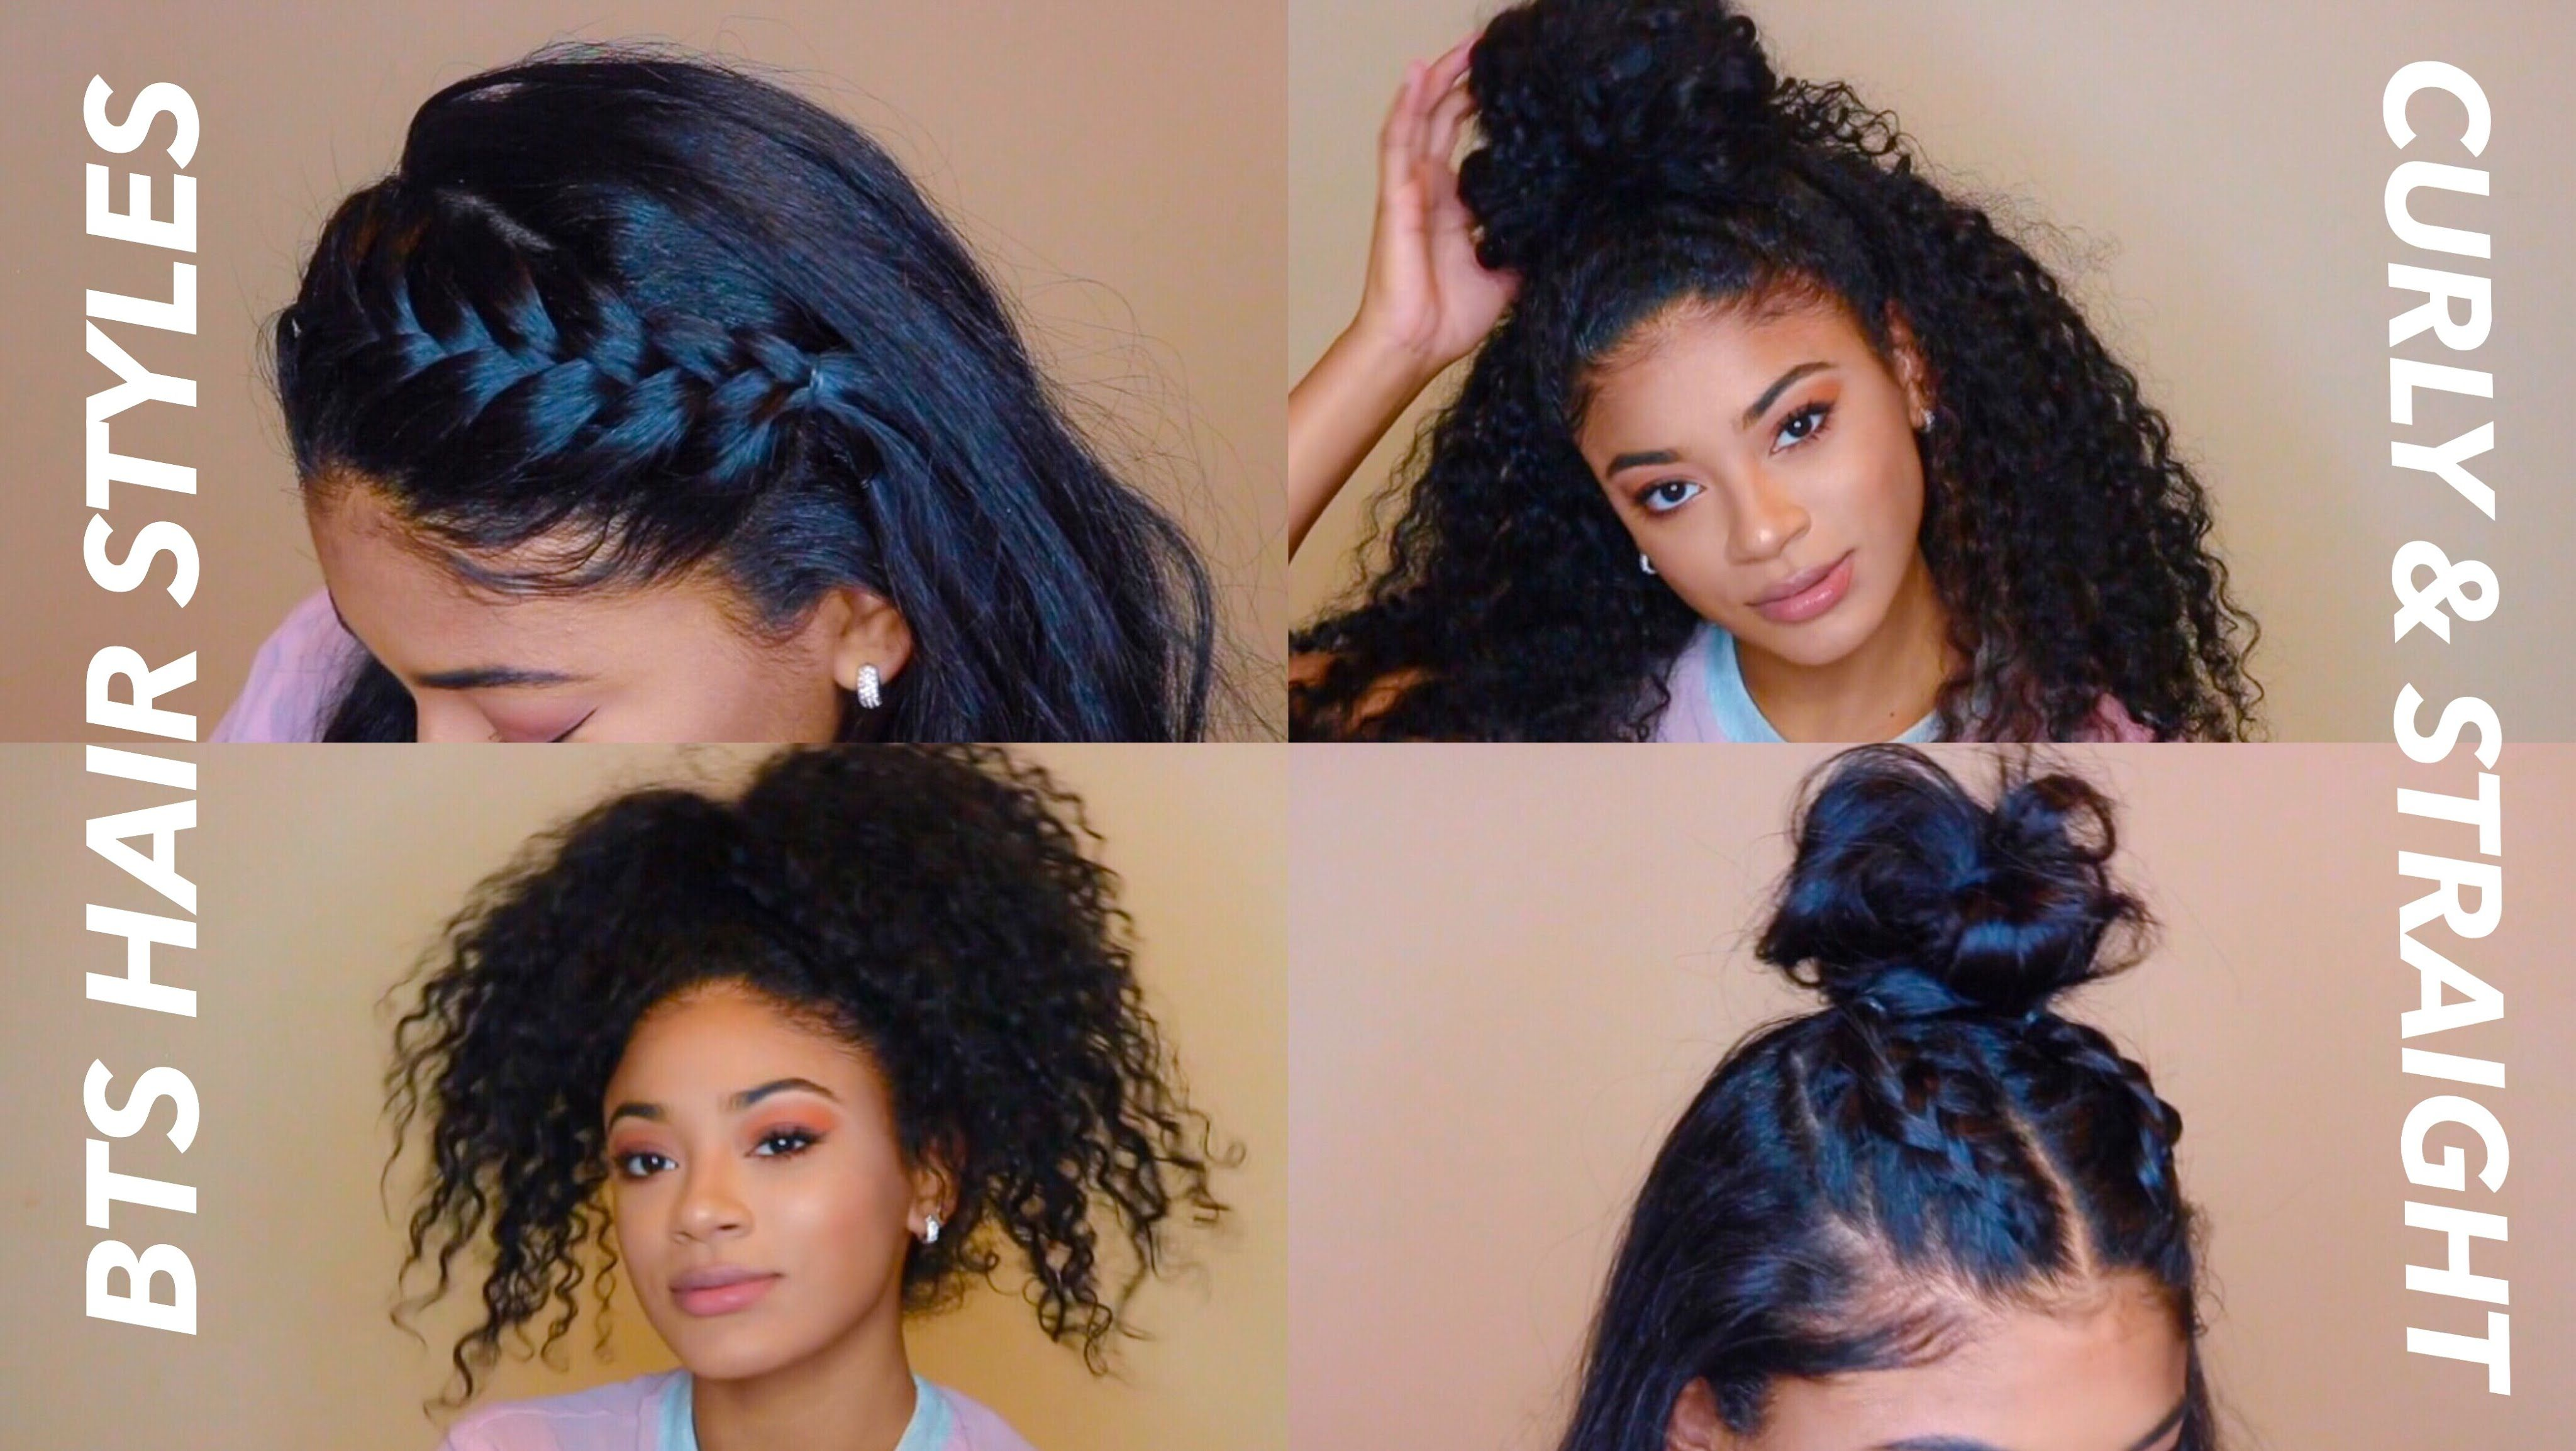 Hairstyles For Curly Hair Jasmine Brown | Long face hairstyles, Hair styles, Back to school ...